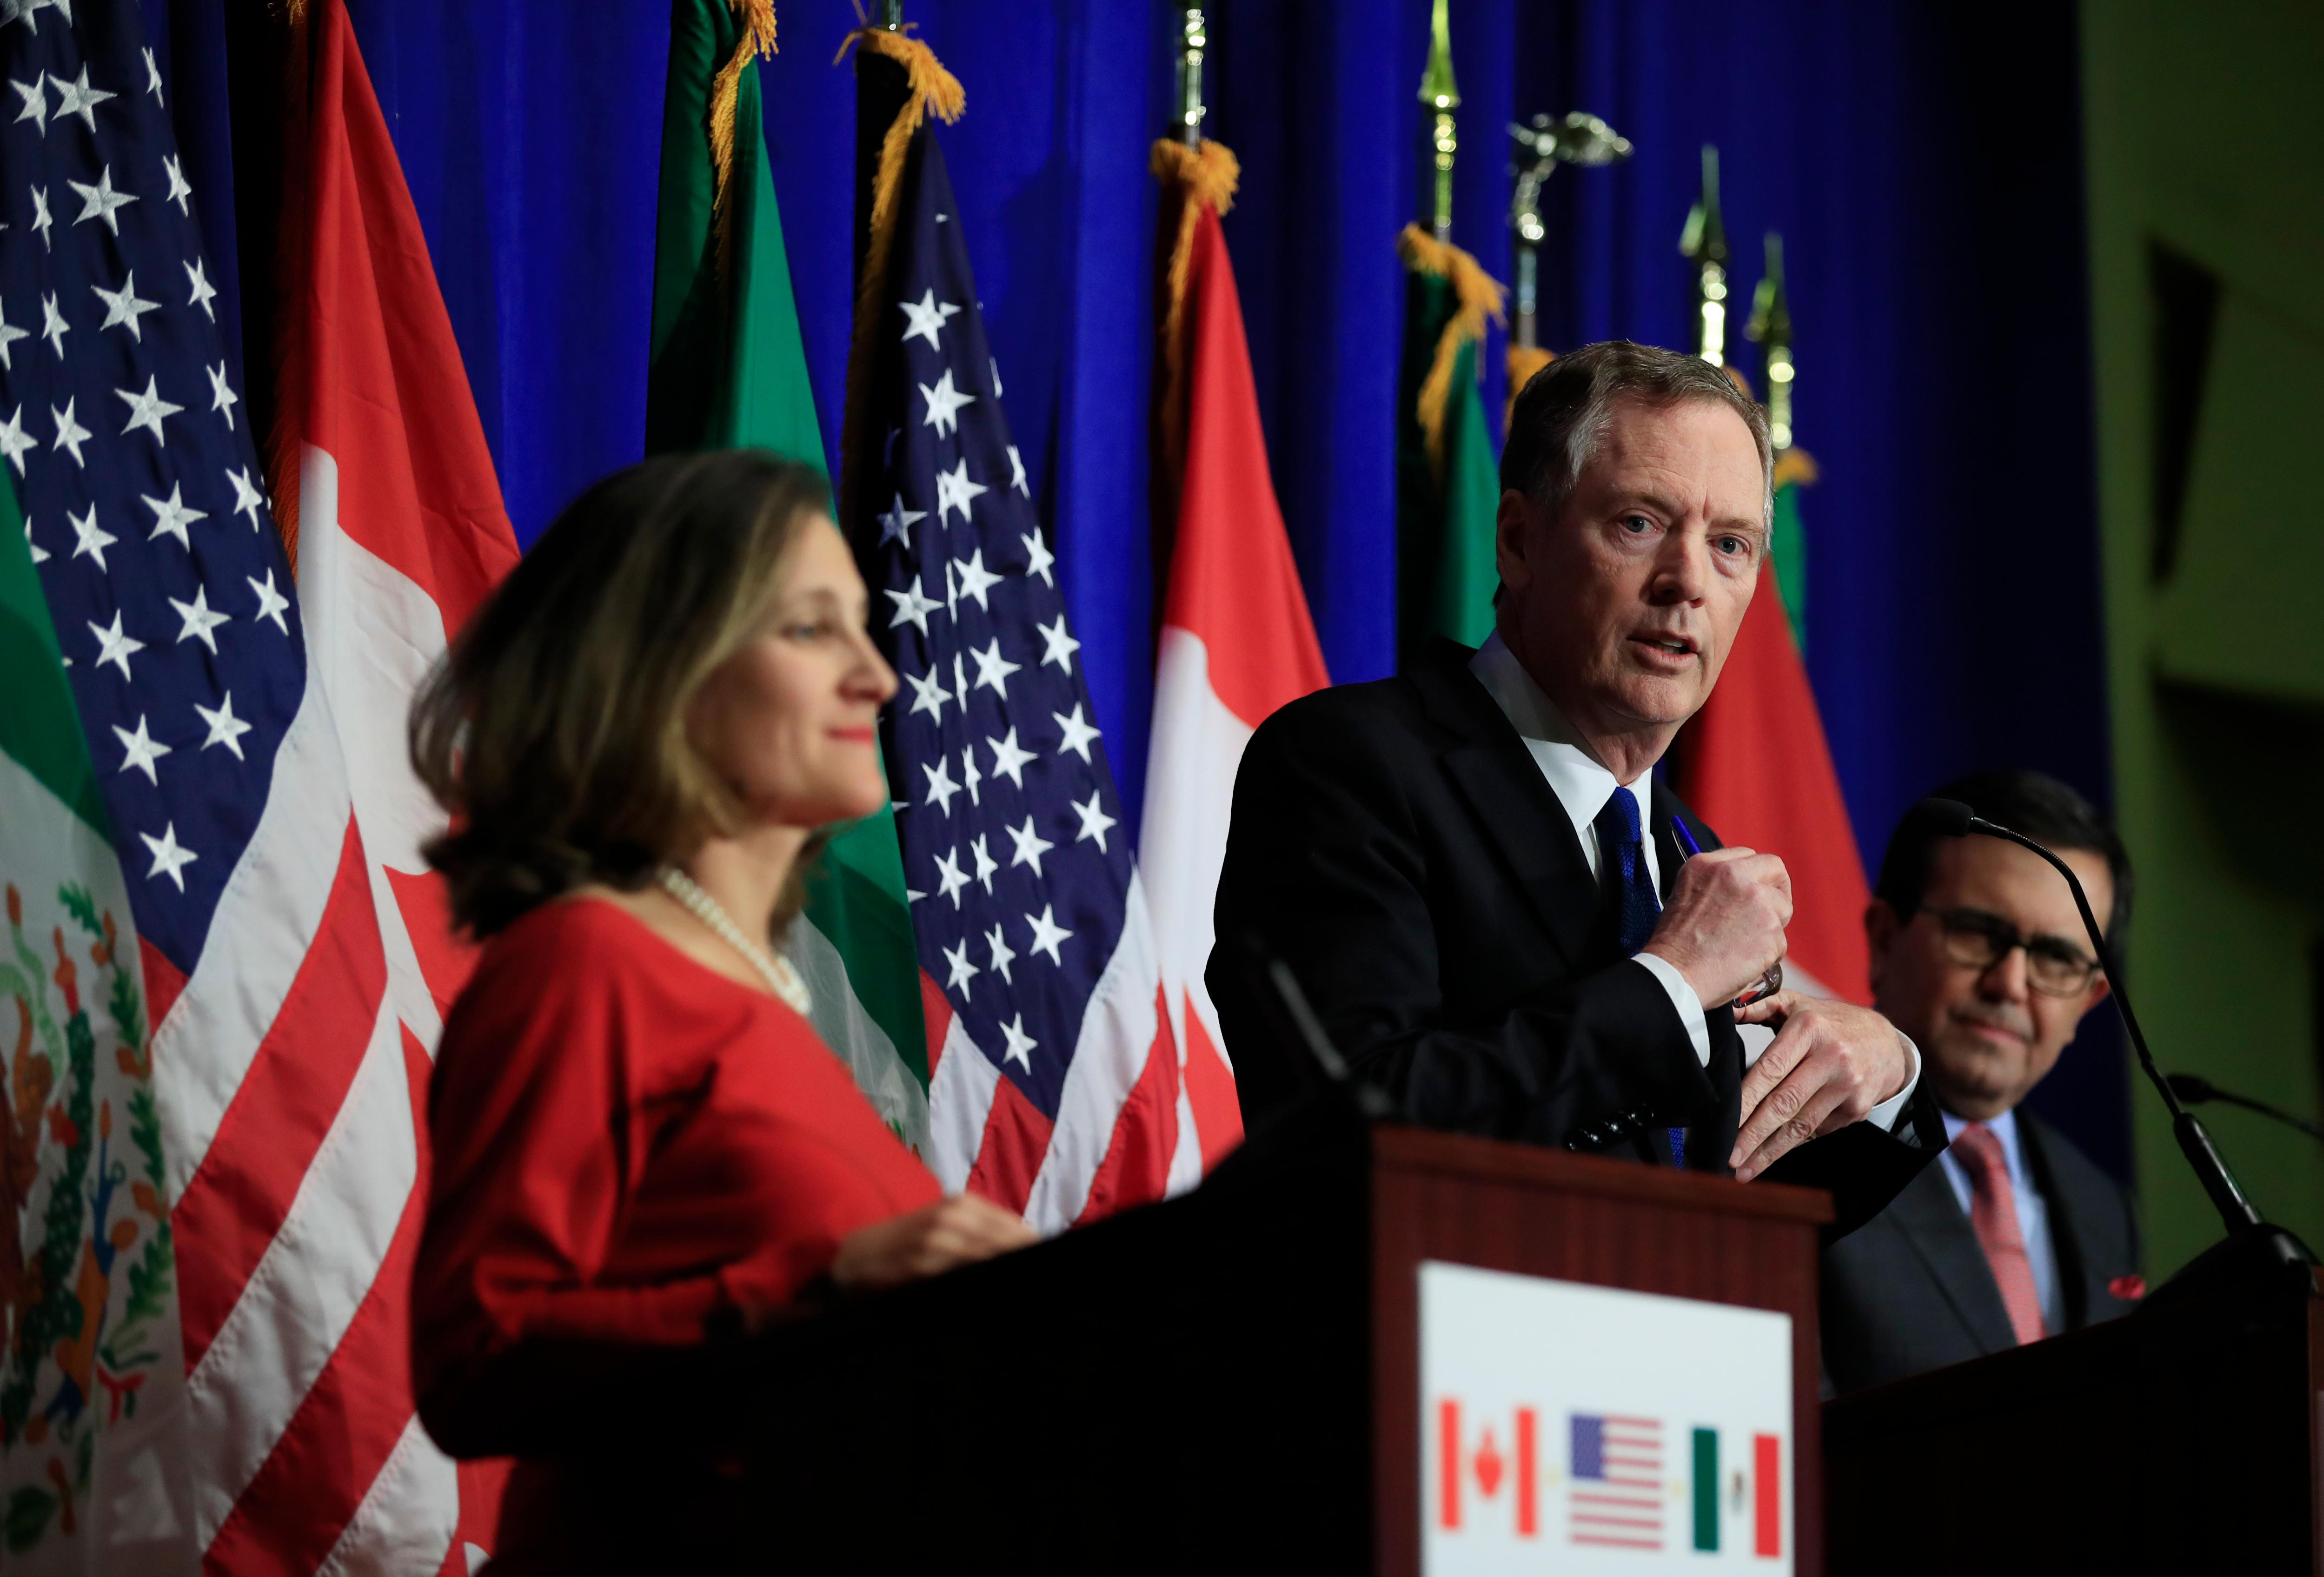 United States Trade Representative Robert Lighthizer, center, with Canadian Minister of Foreign Affairs Chrystia Freeland, left, and Mexico's Secretary of Economy Ildefonso Guajardo Villarrea, right, speaks during the conclusion of the fourth round of negotiations for a new North American Free Trade Agreement (NAFTA) in Washington, Tuesday, Oct. 17, 2017. (AP Photo/Manuel Balce Ceneta)